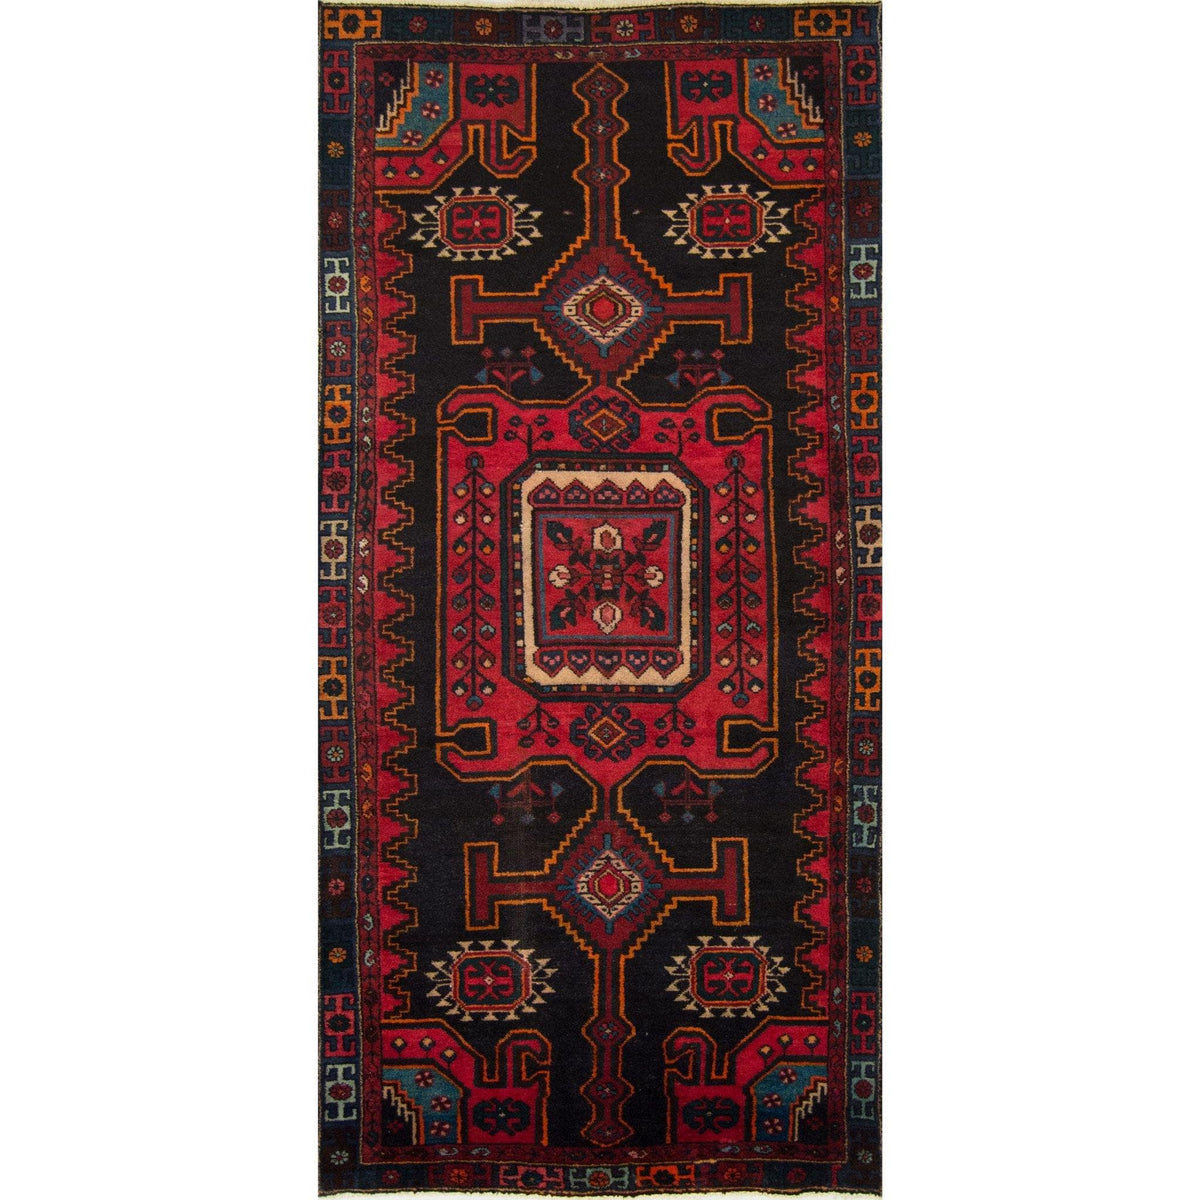 Beautiful Fine Hand-knotted Azerbaijan Rug 125cm x 272cm Persian-Rug | House-of-Haghi | NewMarket | Auckland | NZ | Handmade Persian Rugs | Hand Knotted Persian Rugs